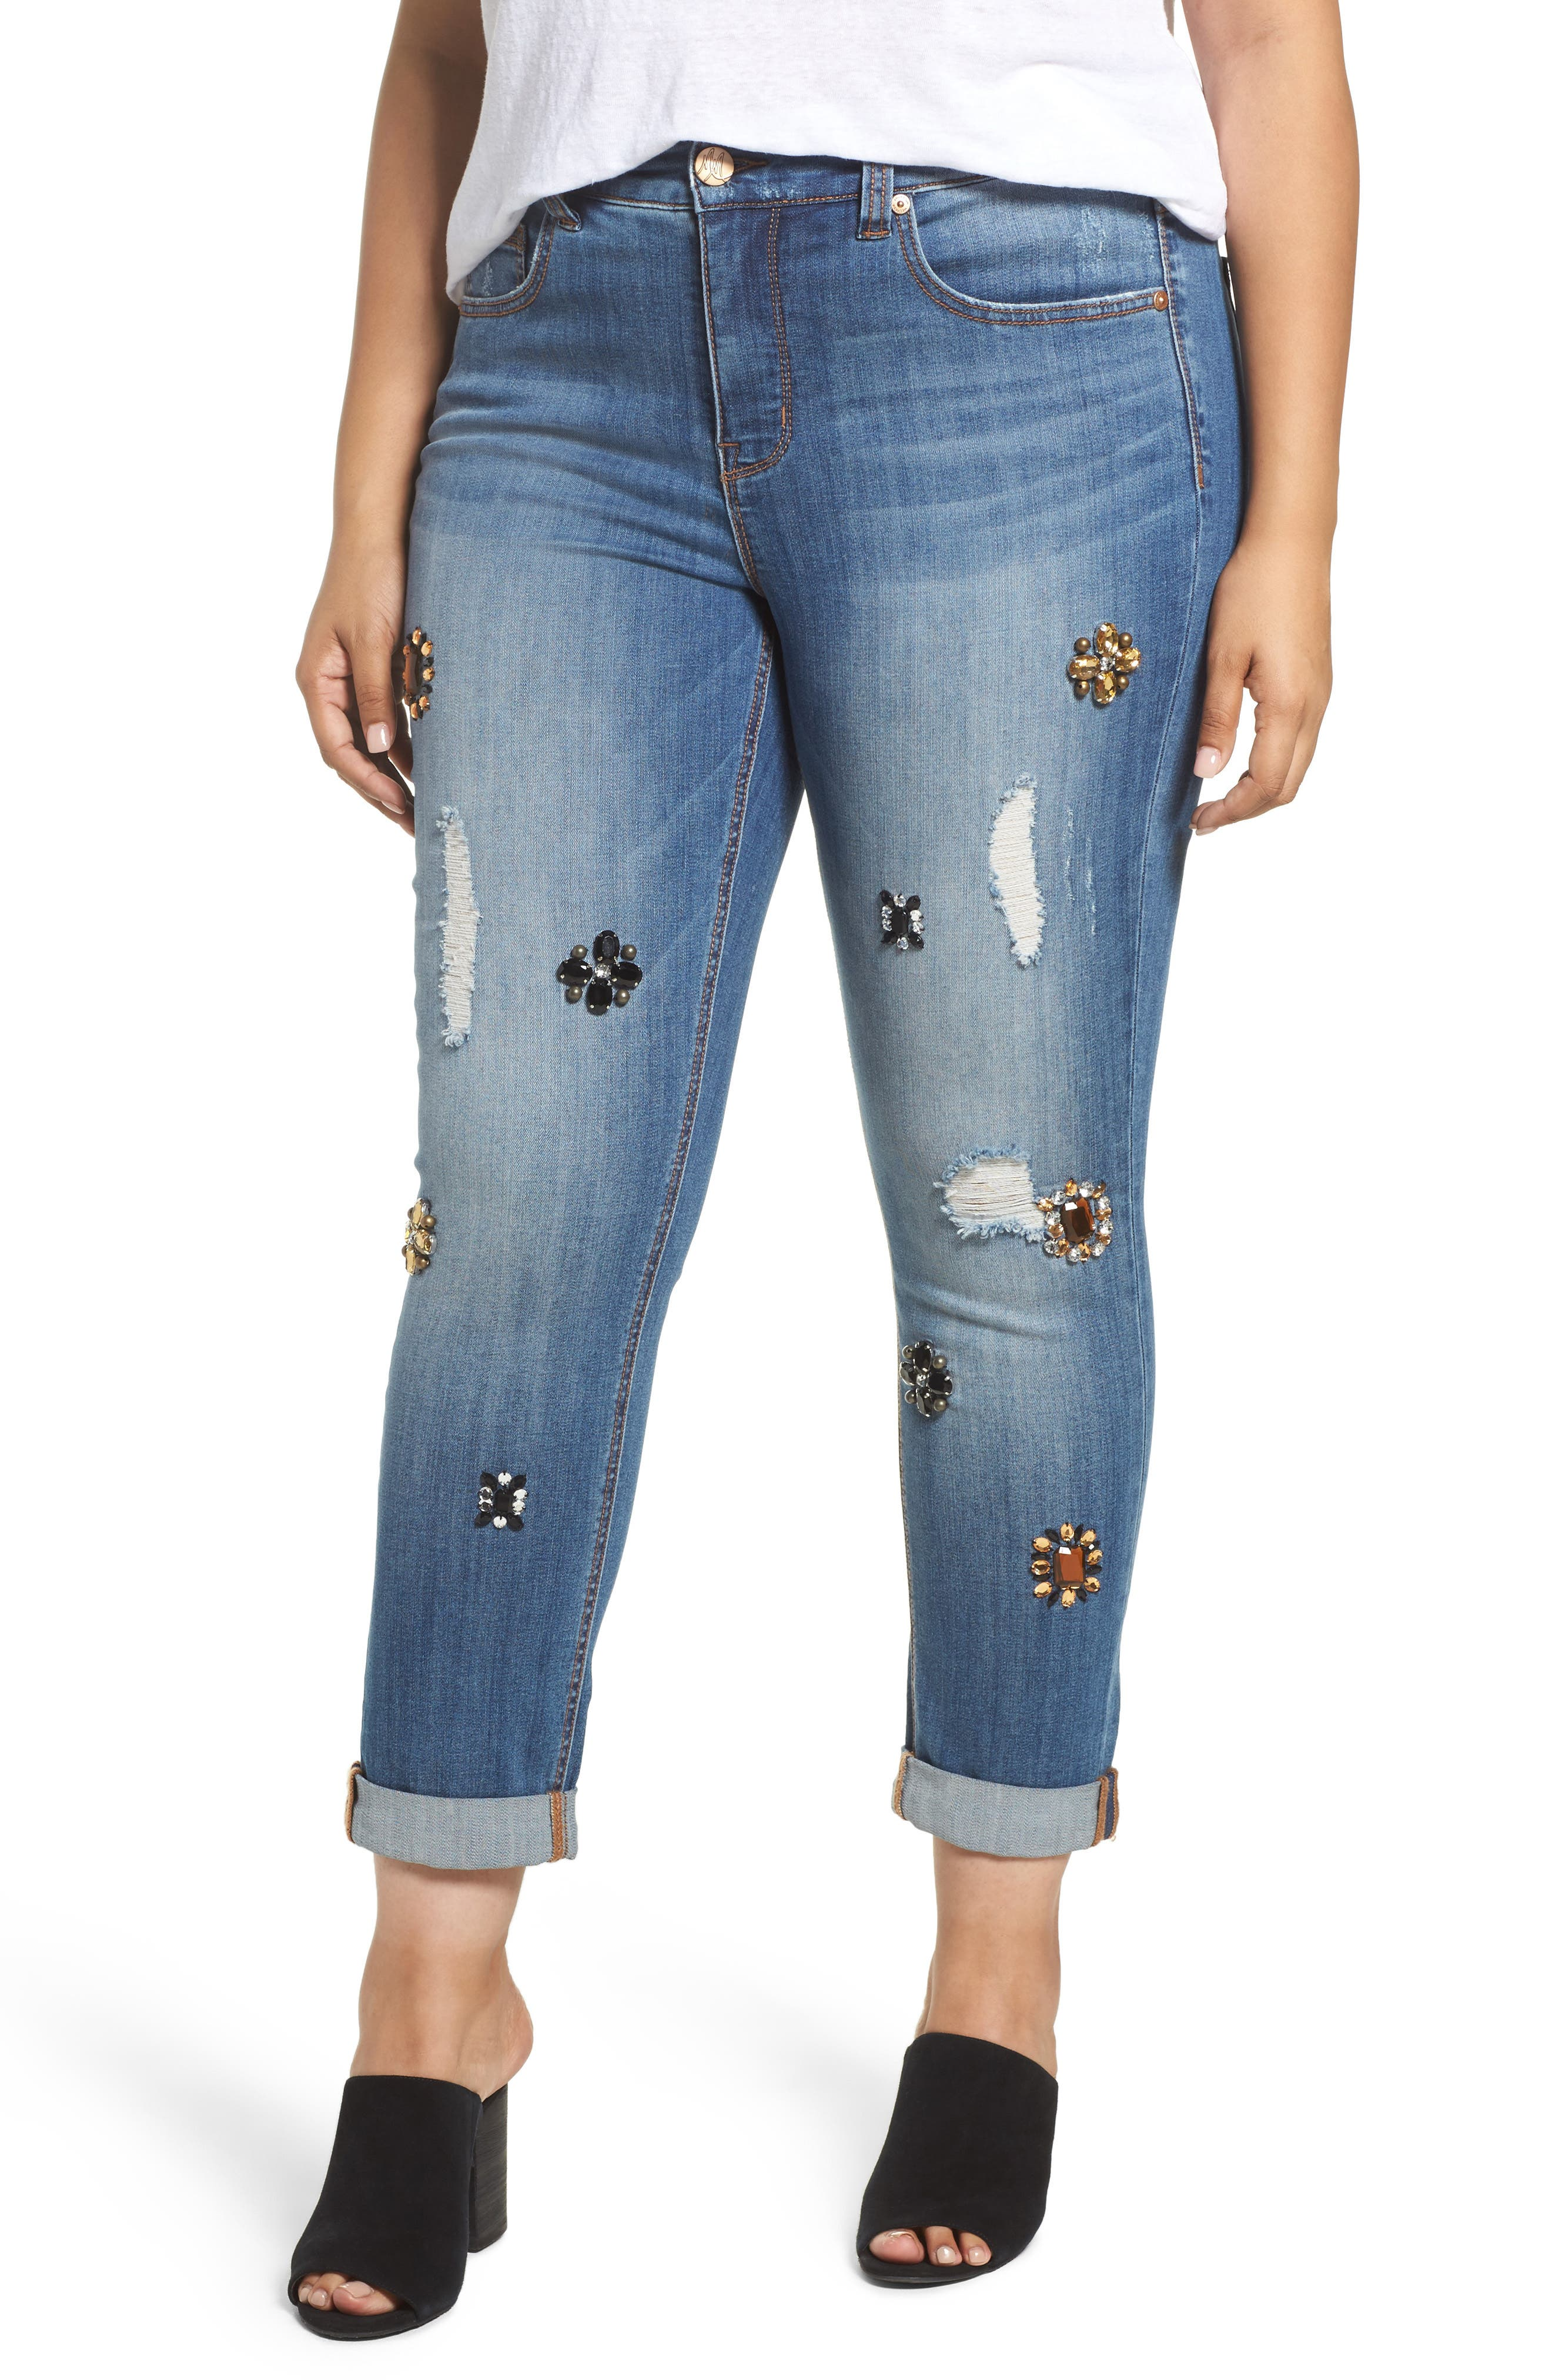 Main Image - Melissa McCarthy Seven7 Jeweled Skinny Jeans (Heiress) (Plus Size)